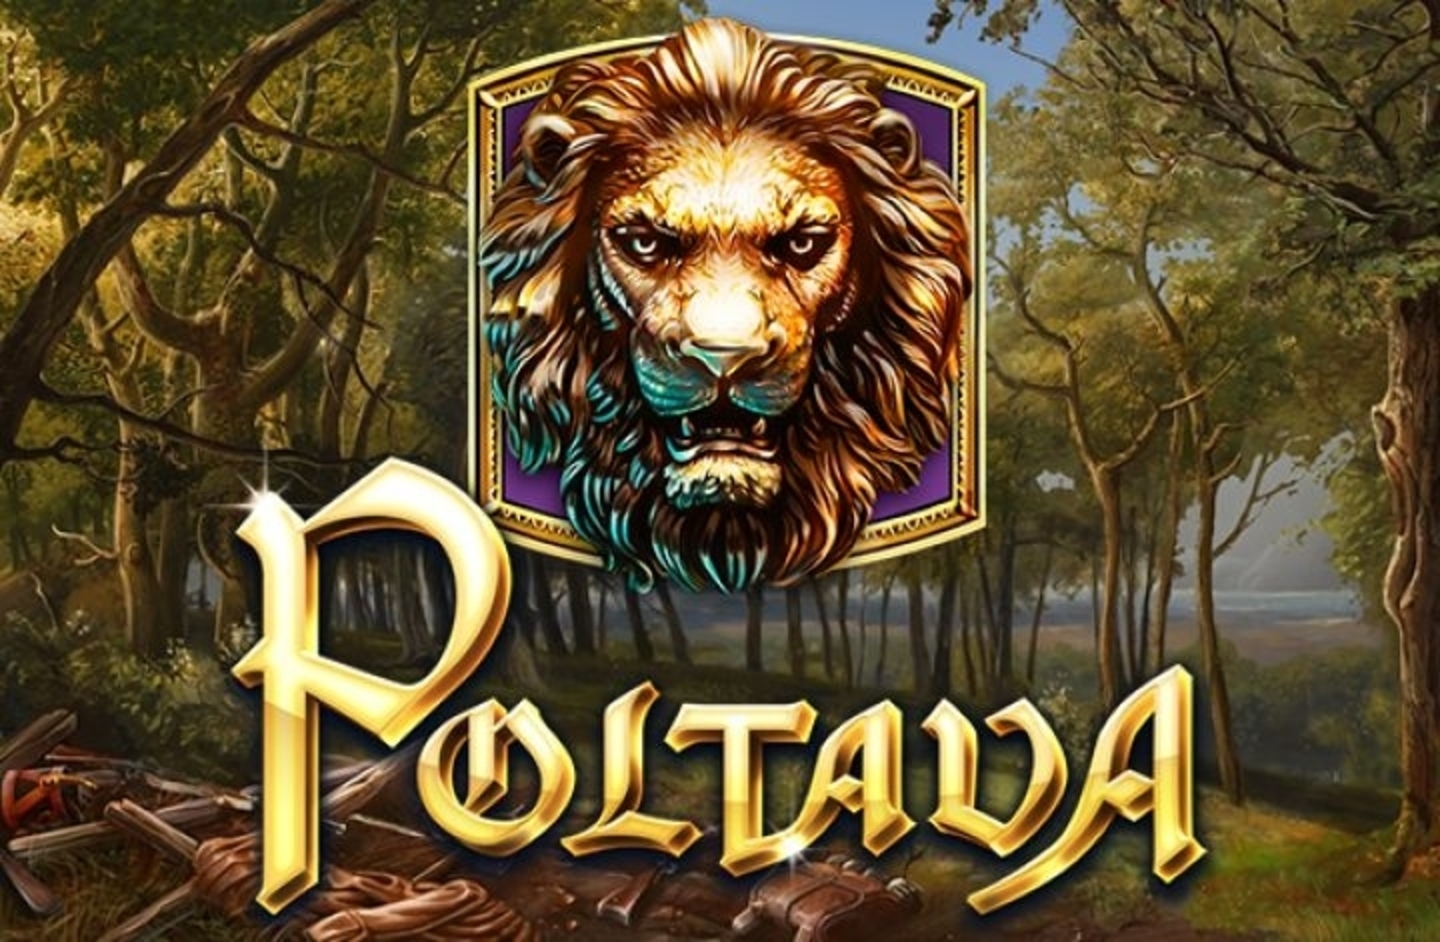 Se Poltava - flames of war Online Slot Demo Game, ELK Studios